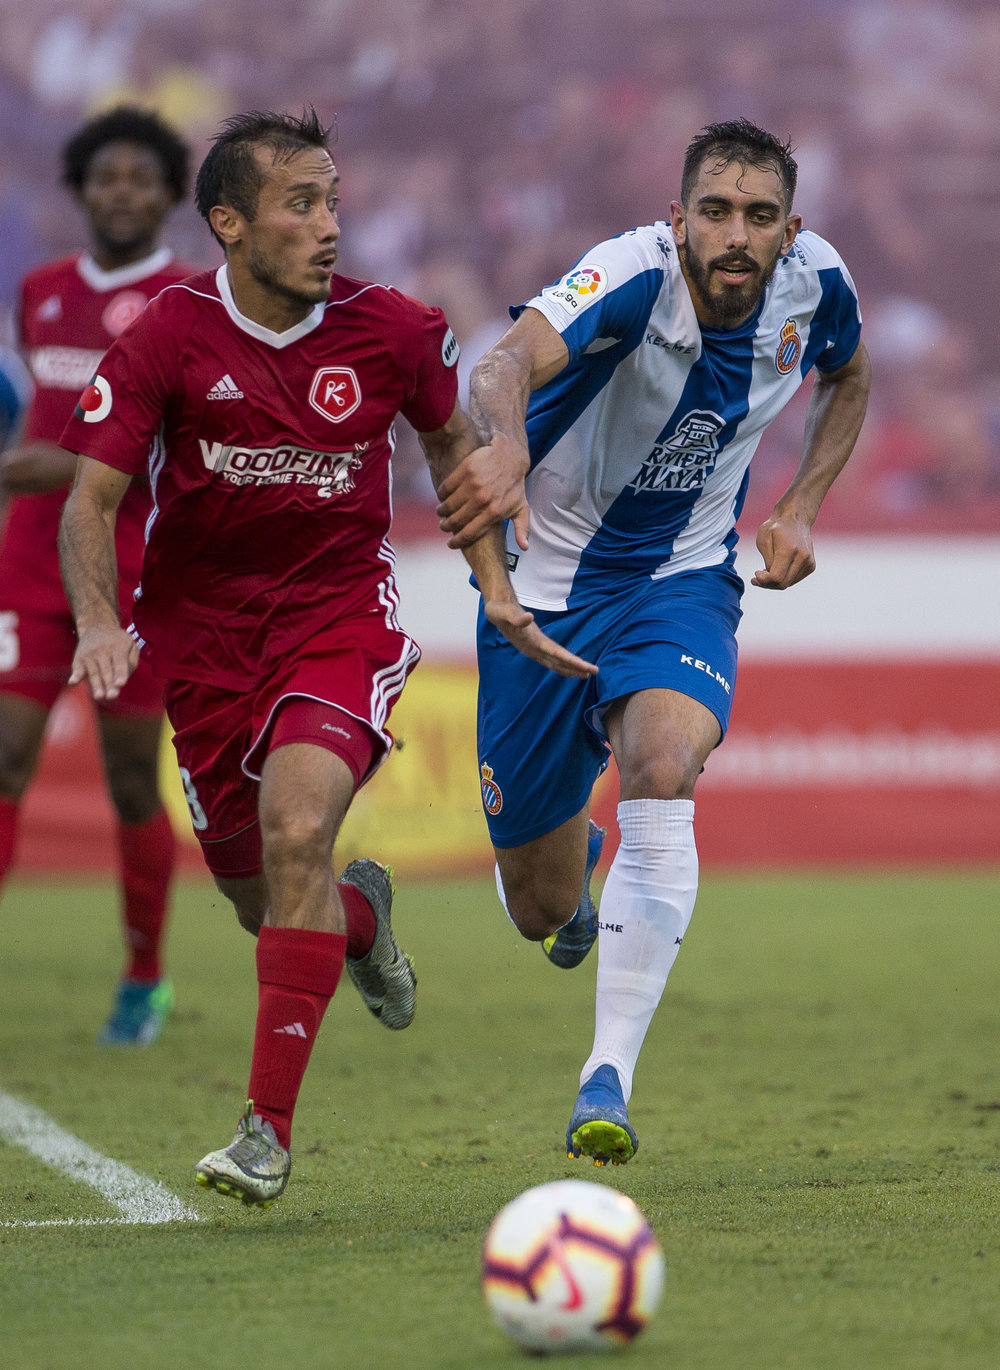 Richmond Kickers face off team Espanyol, at Kickers Stadium, July 25, in Richmond, VA.  Photos for Richmond Times-Dispatch